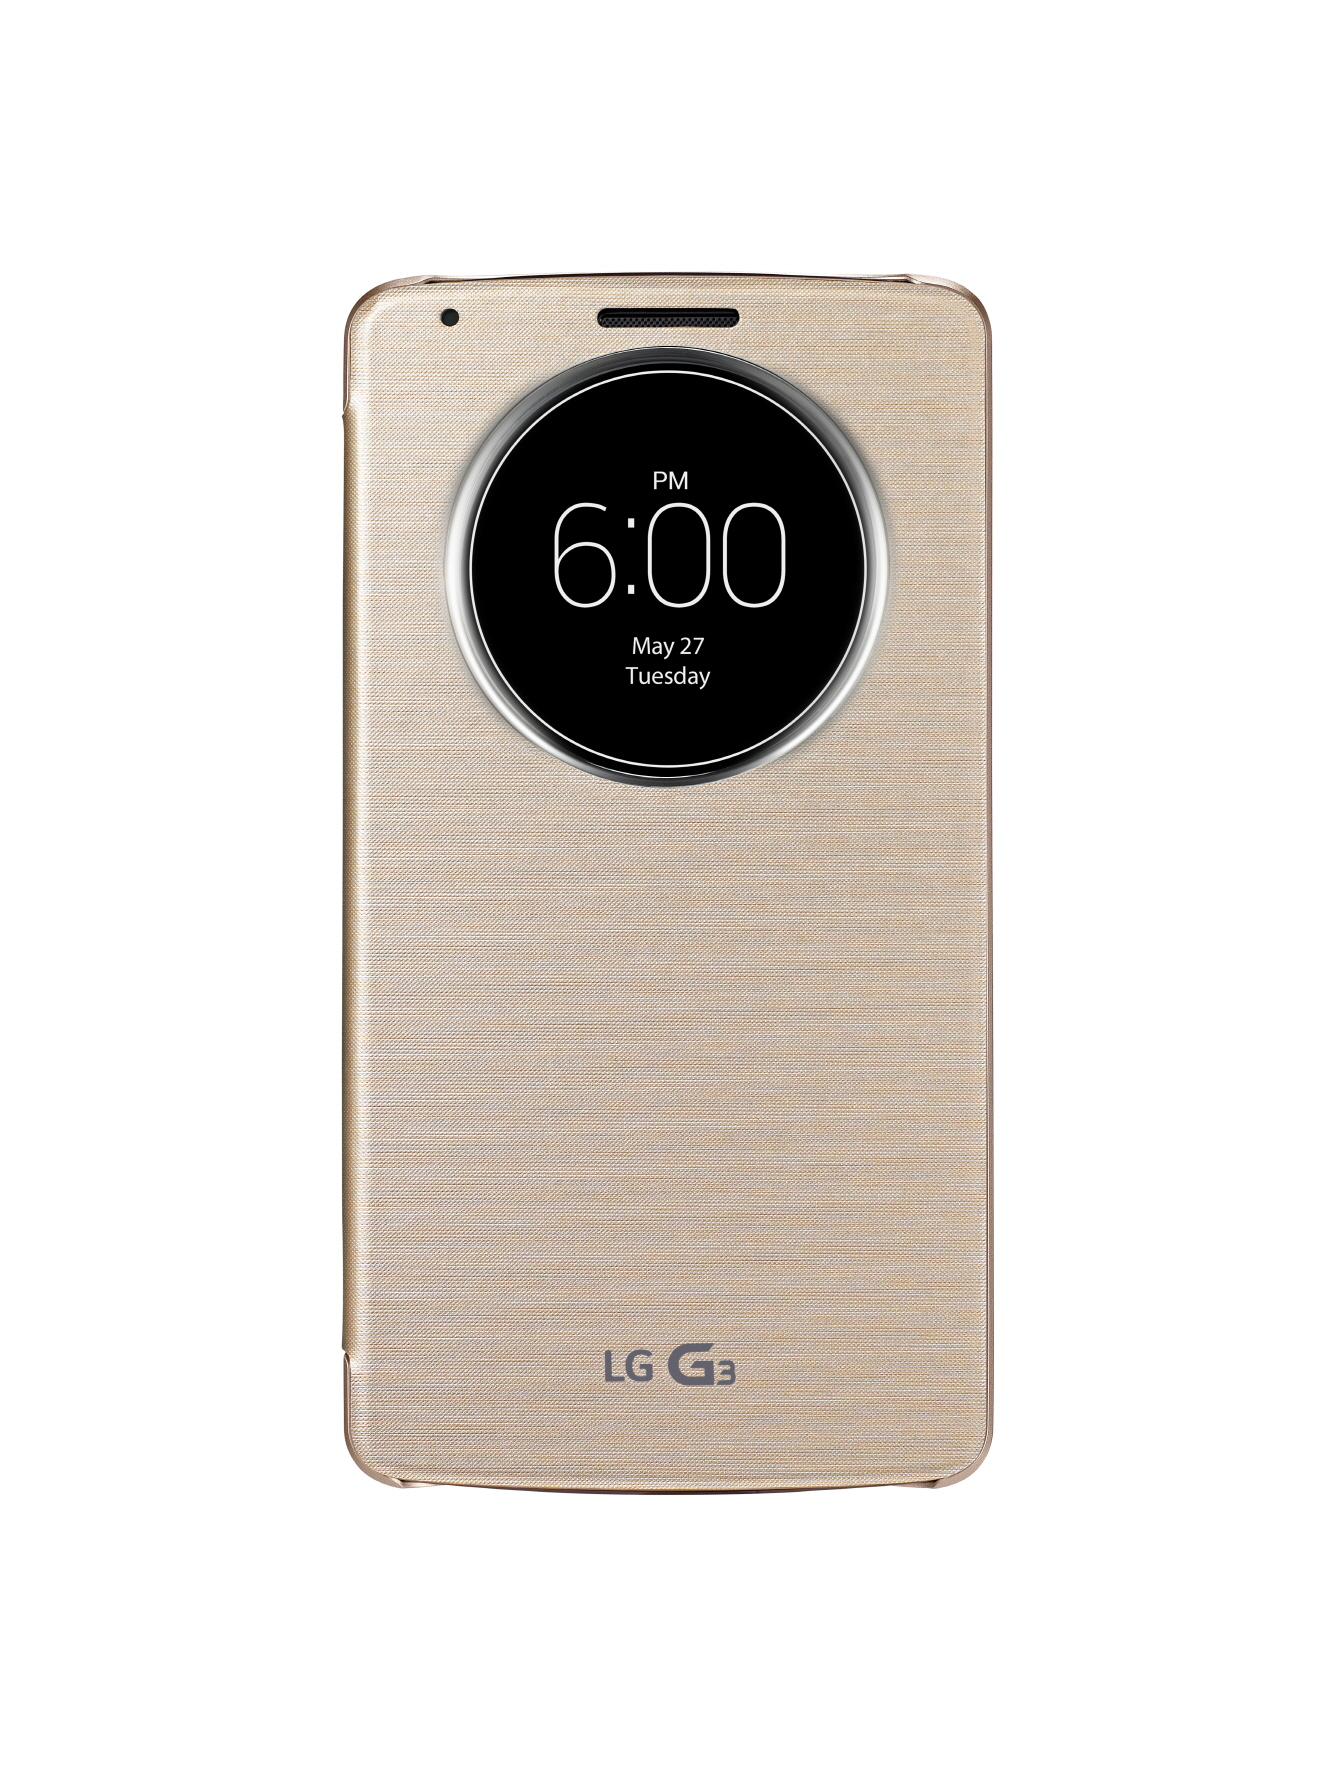 A front view of LG G3 wearing QuickCircleTM case in Shine Gold color.